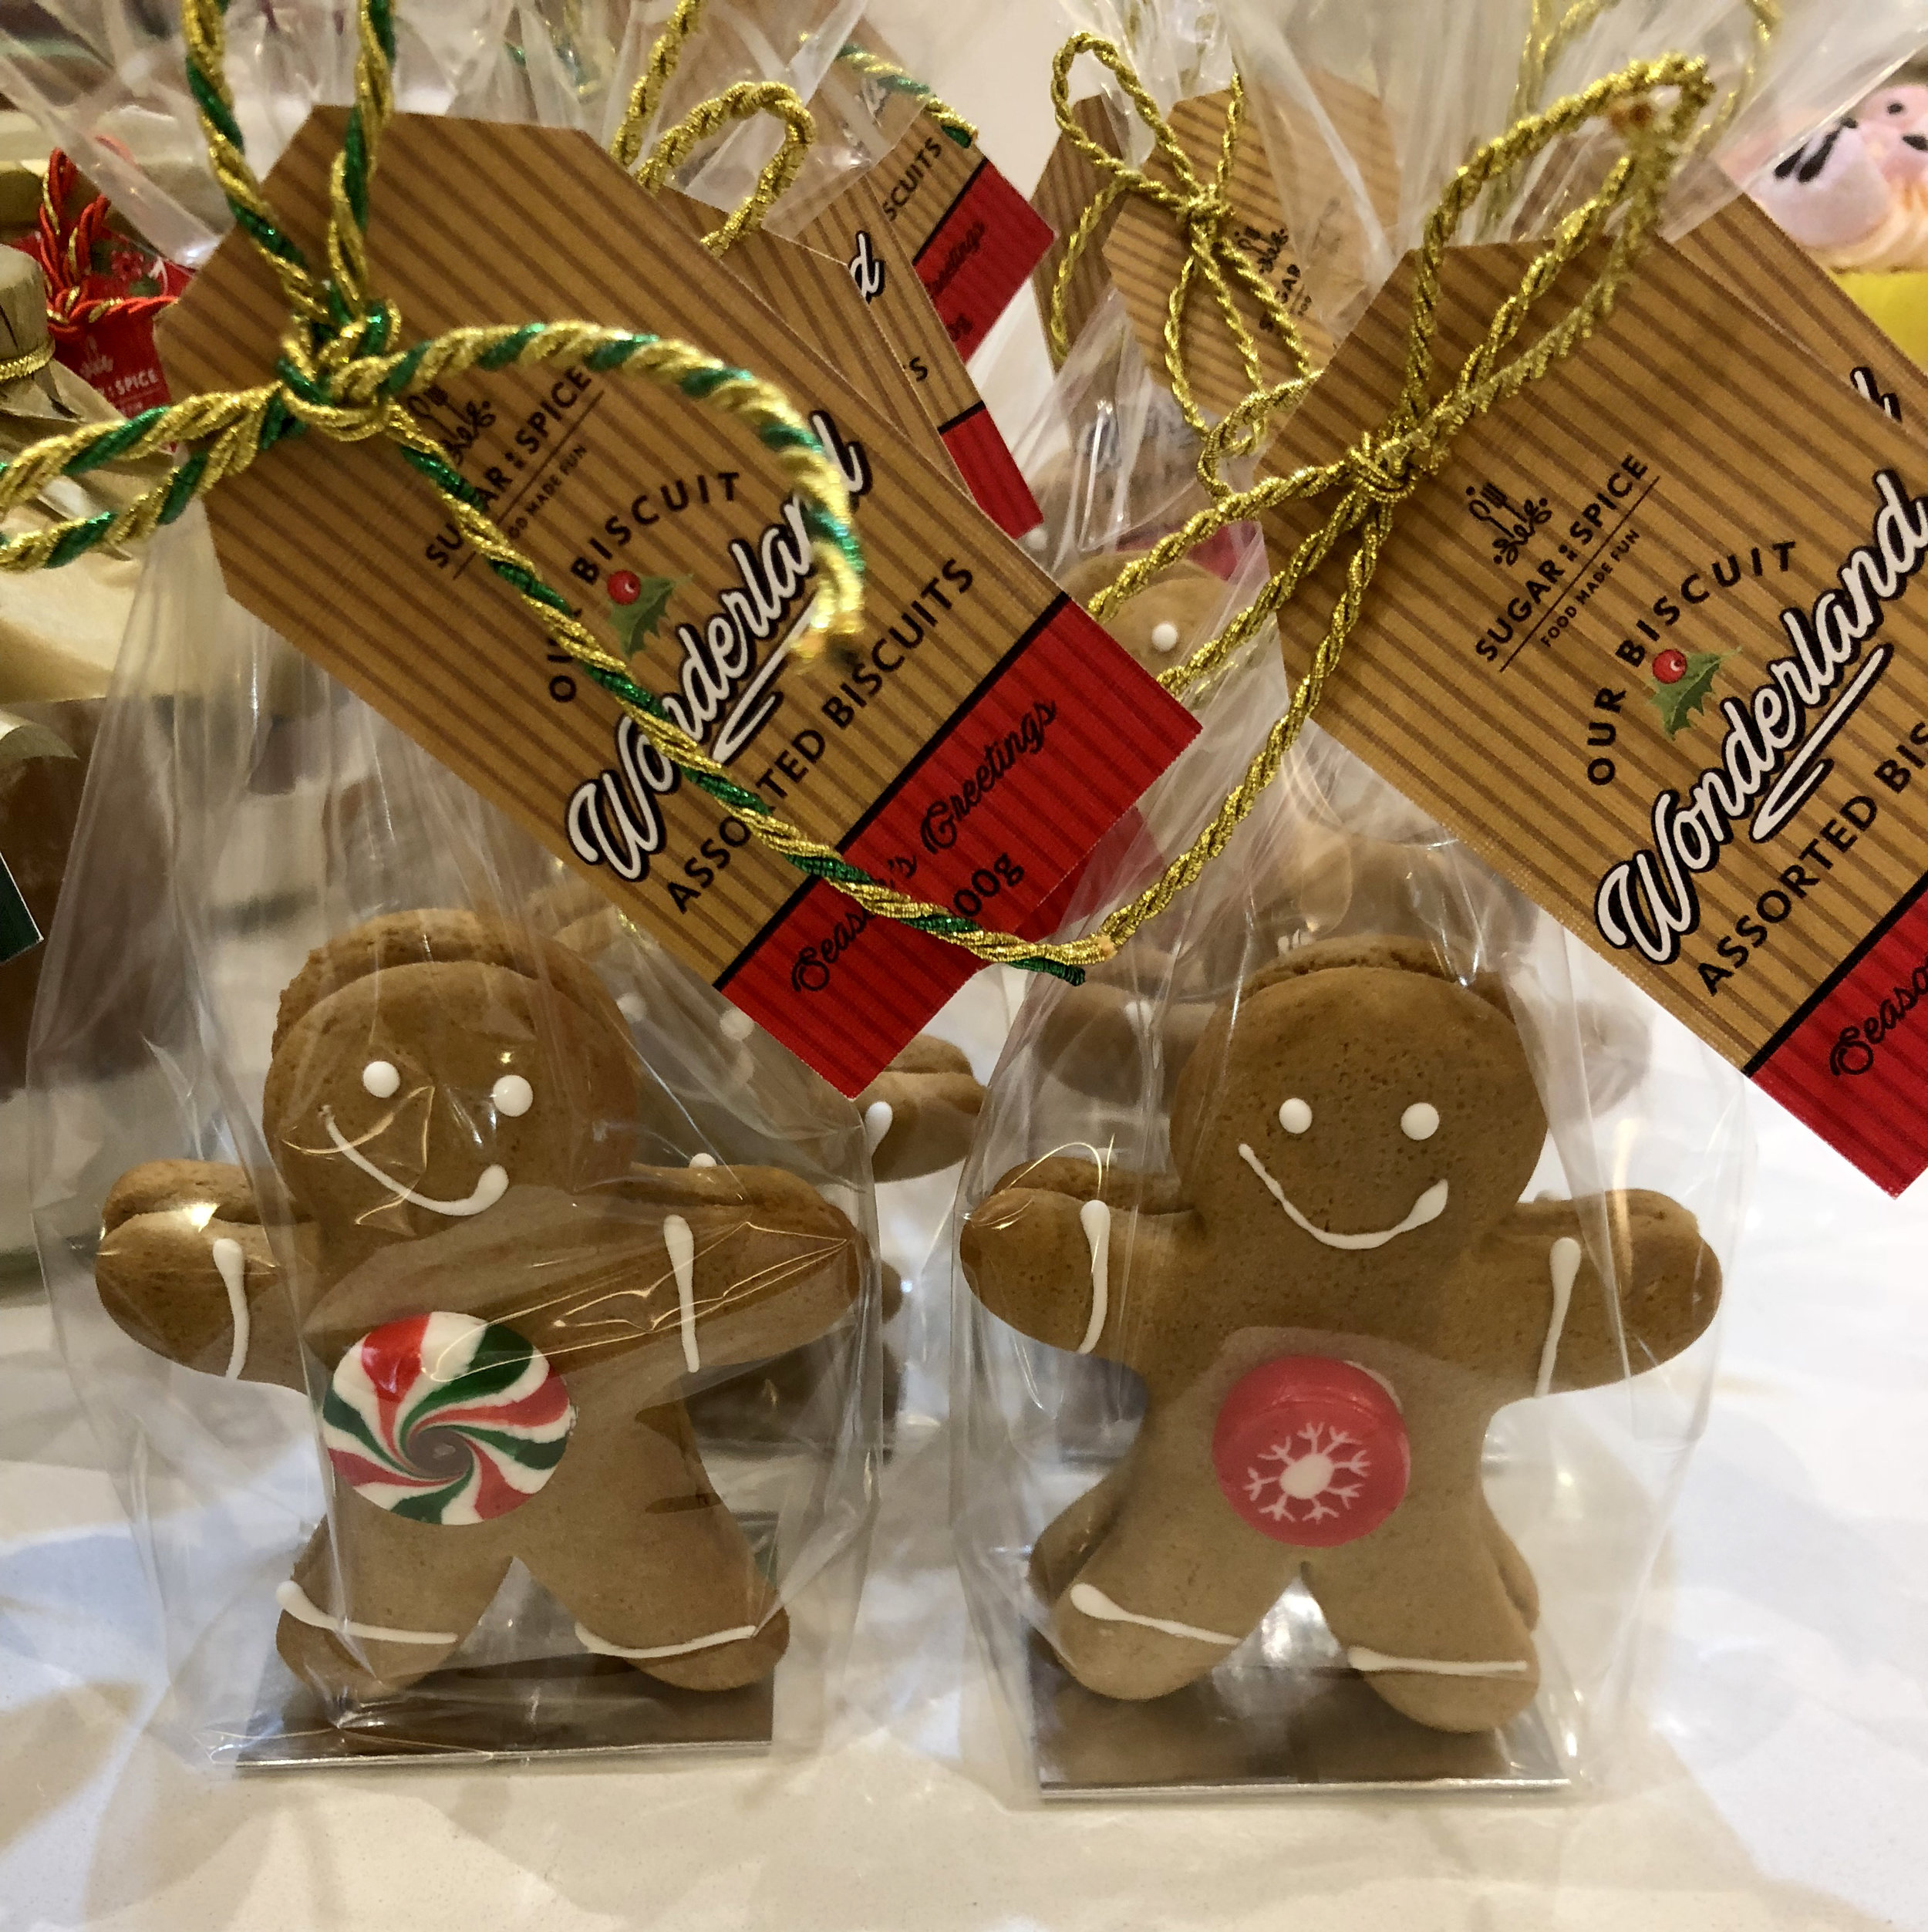 GINGER BREAD MEN: Ready to eat - or ready to share THIS FESTIVE SEASON!!! Makes for a great Stocking filler - in store NOW at $11.95.